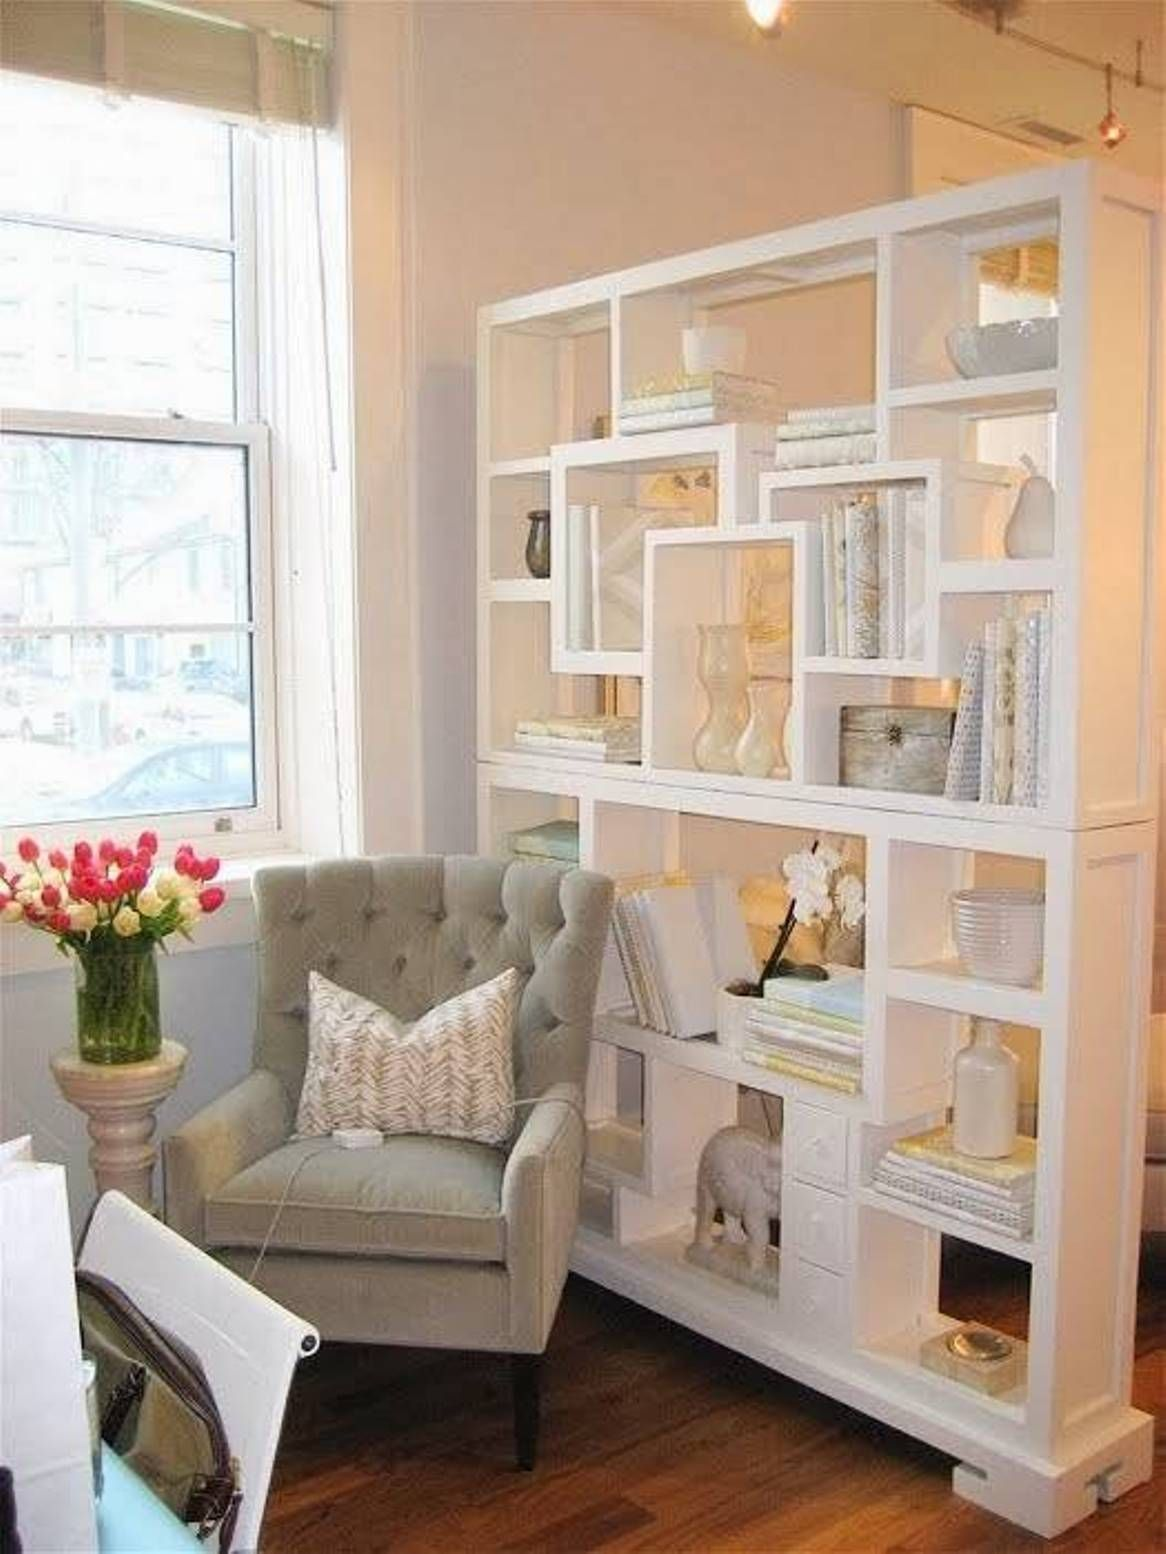 Create Desired Look With Wooden Slats And Bookshelf